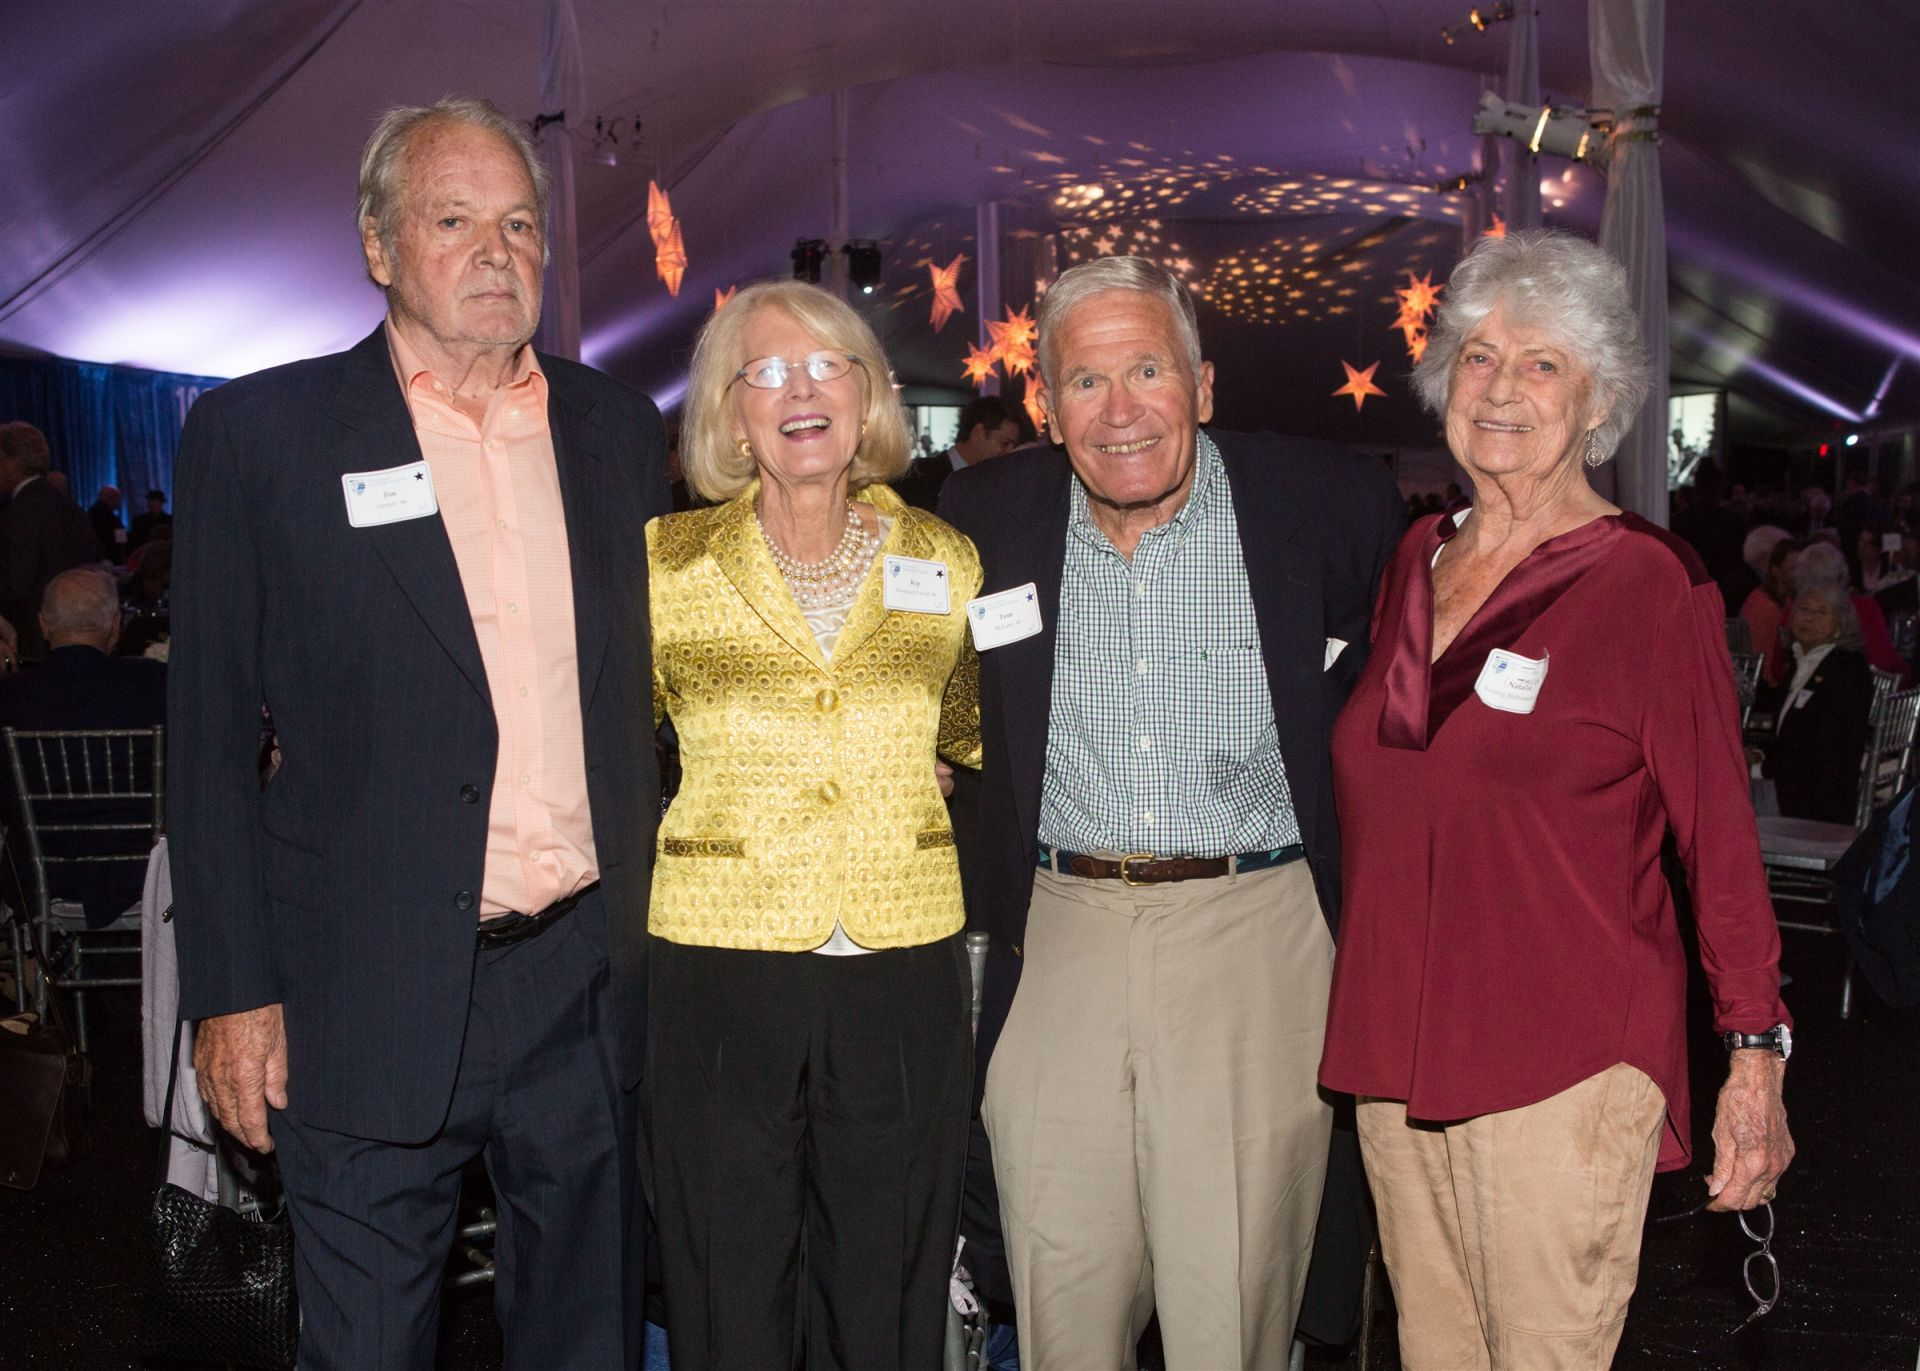 Centennial Celebration Weekend: Members of the Class of 1946